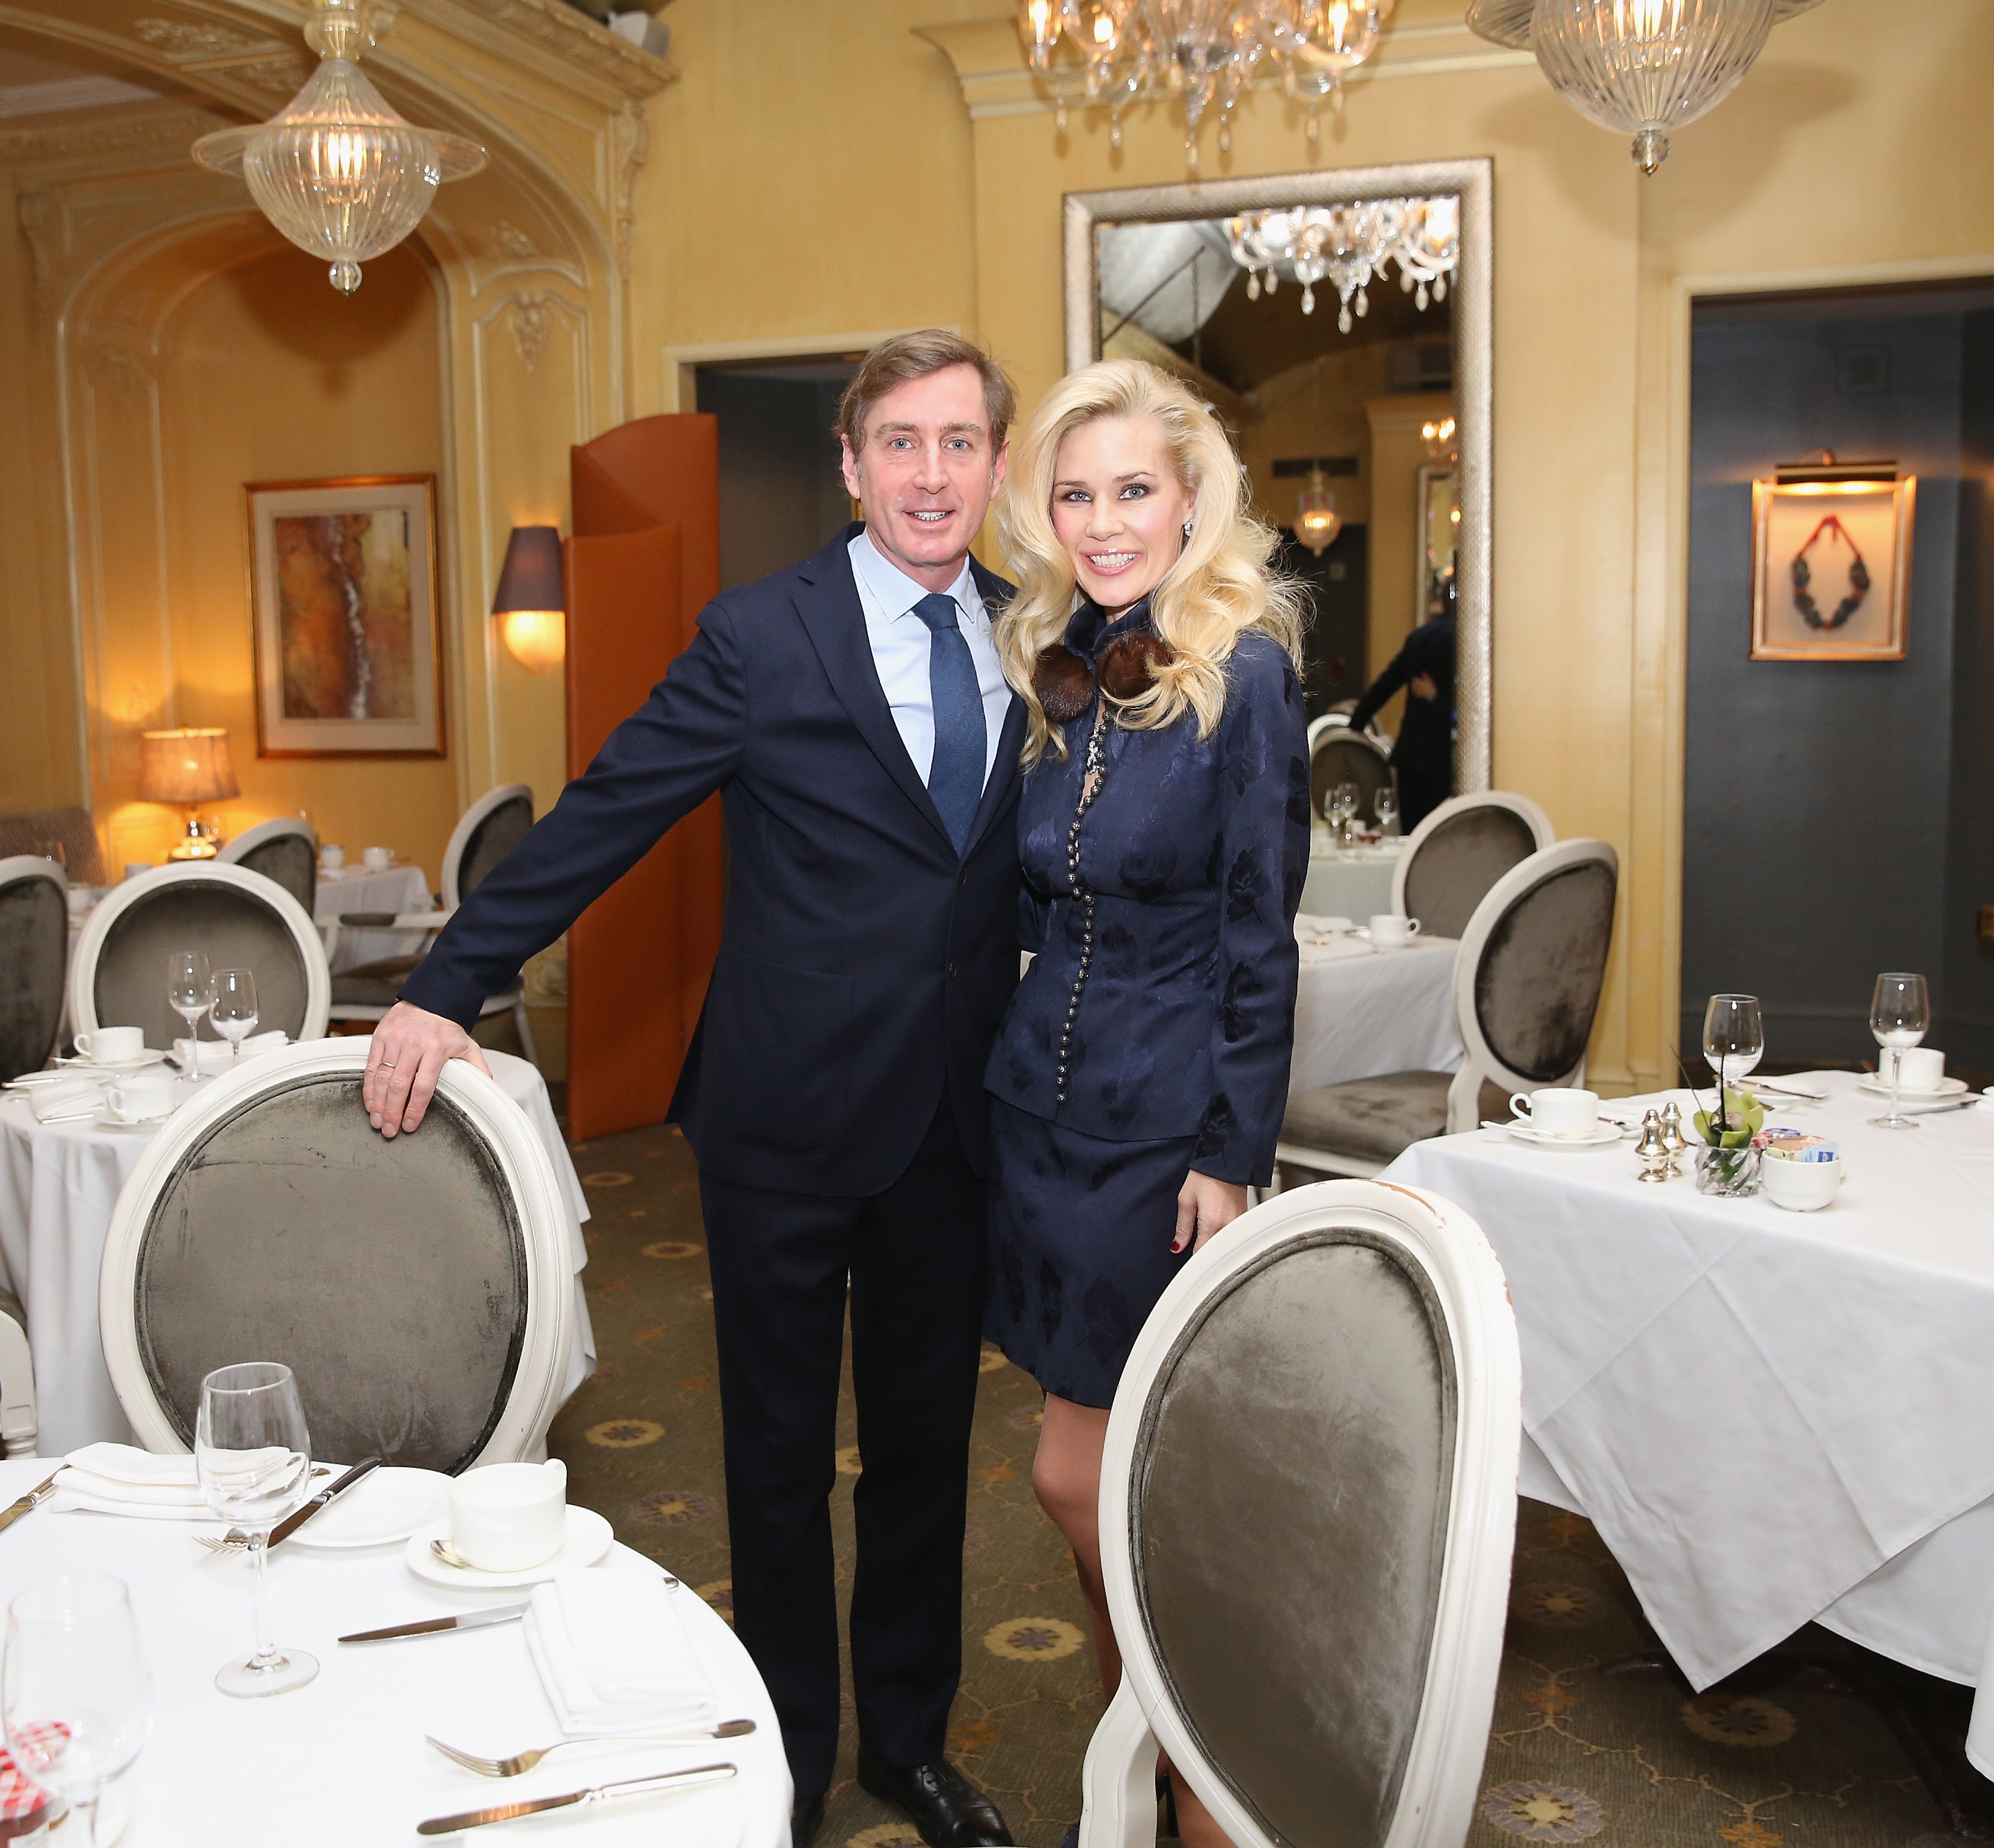 NEW YORK, NY - JANUARY 08: New York Socialite Michelle-Marie Heinemann (R) Hosts Luncheon For Prince Charles Henri Lobkowicz (L) At Plaza Athenee on January 8, 2016 in New York City. (Photo by Robin Marchant/Getty Images for Old Fashioned Mom Magazine)